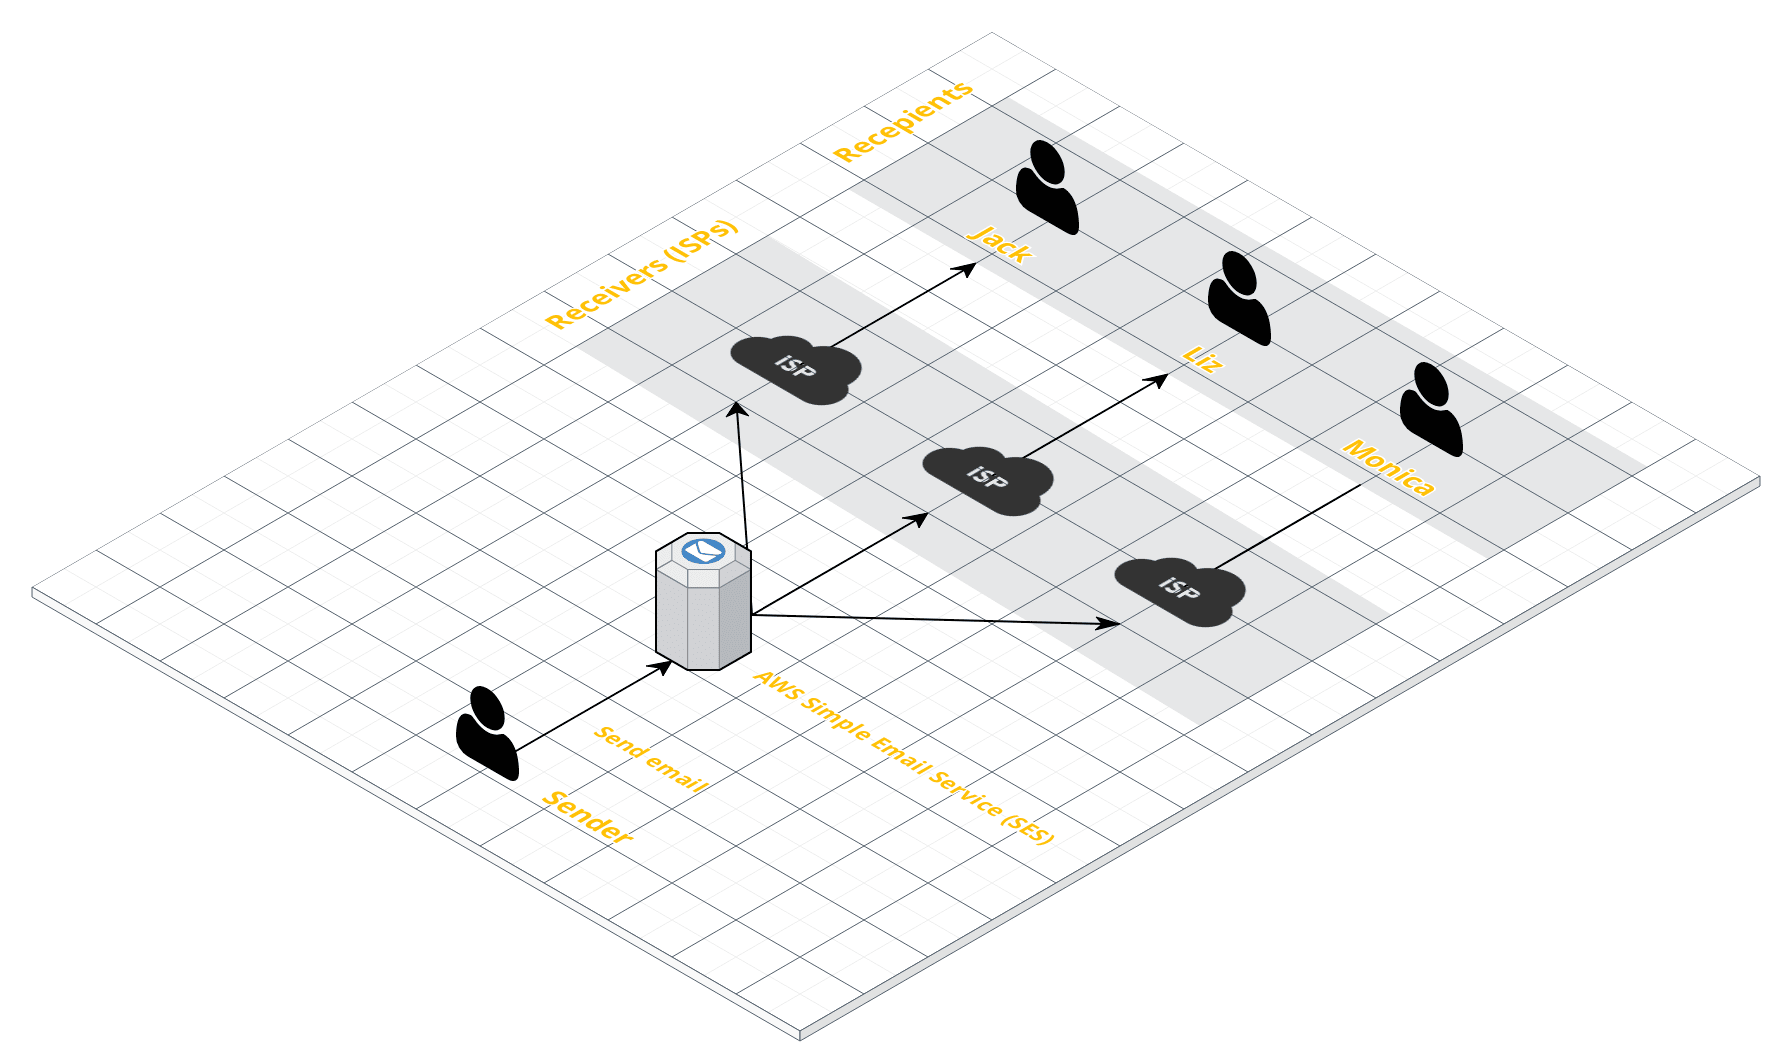 How to handle AWS SES bounces and complaints - Mihai Serban